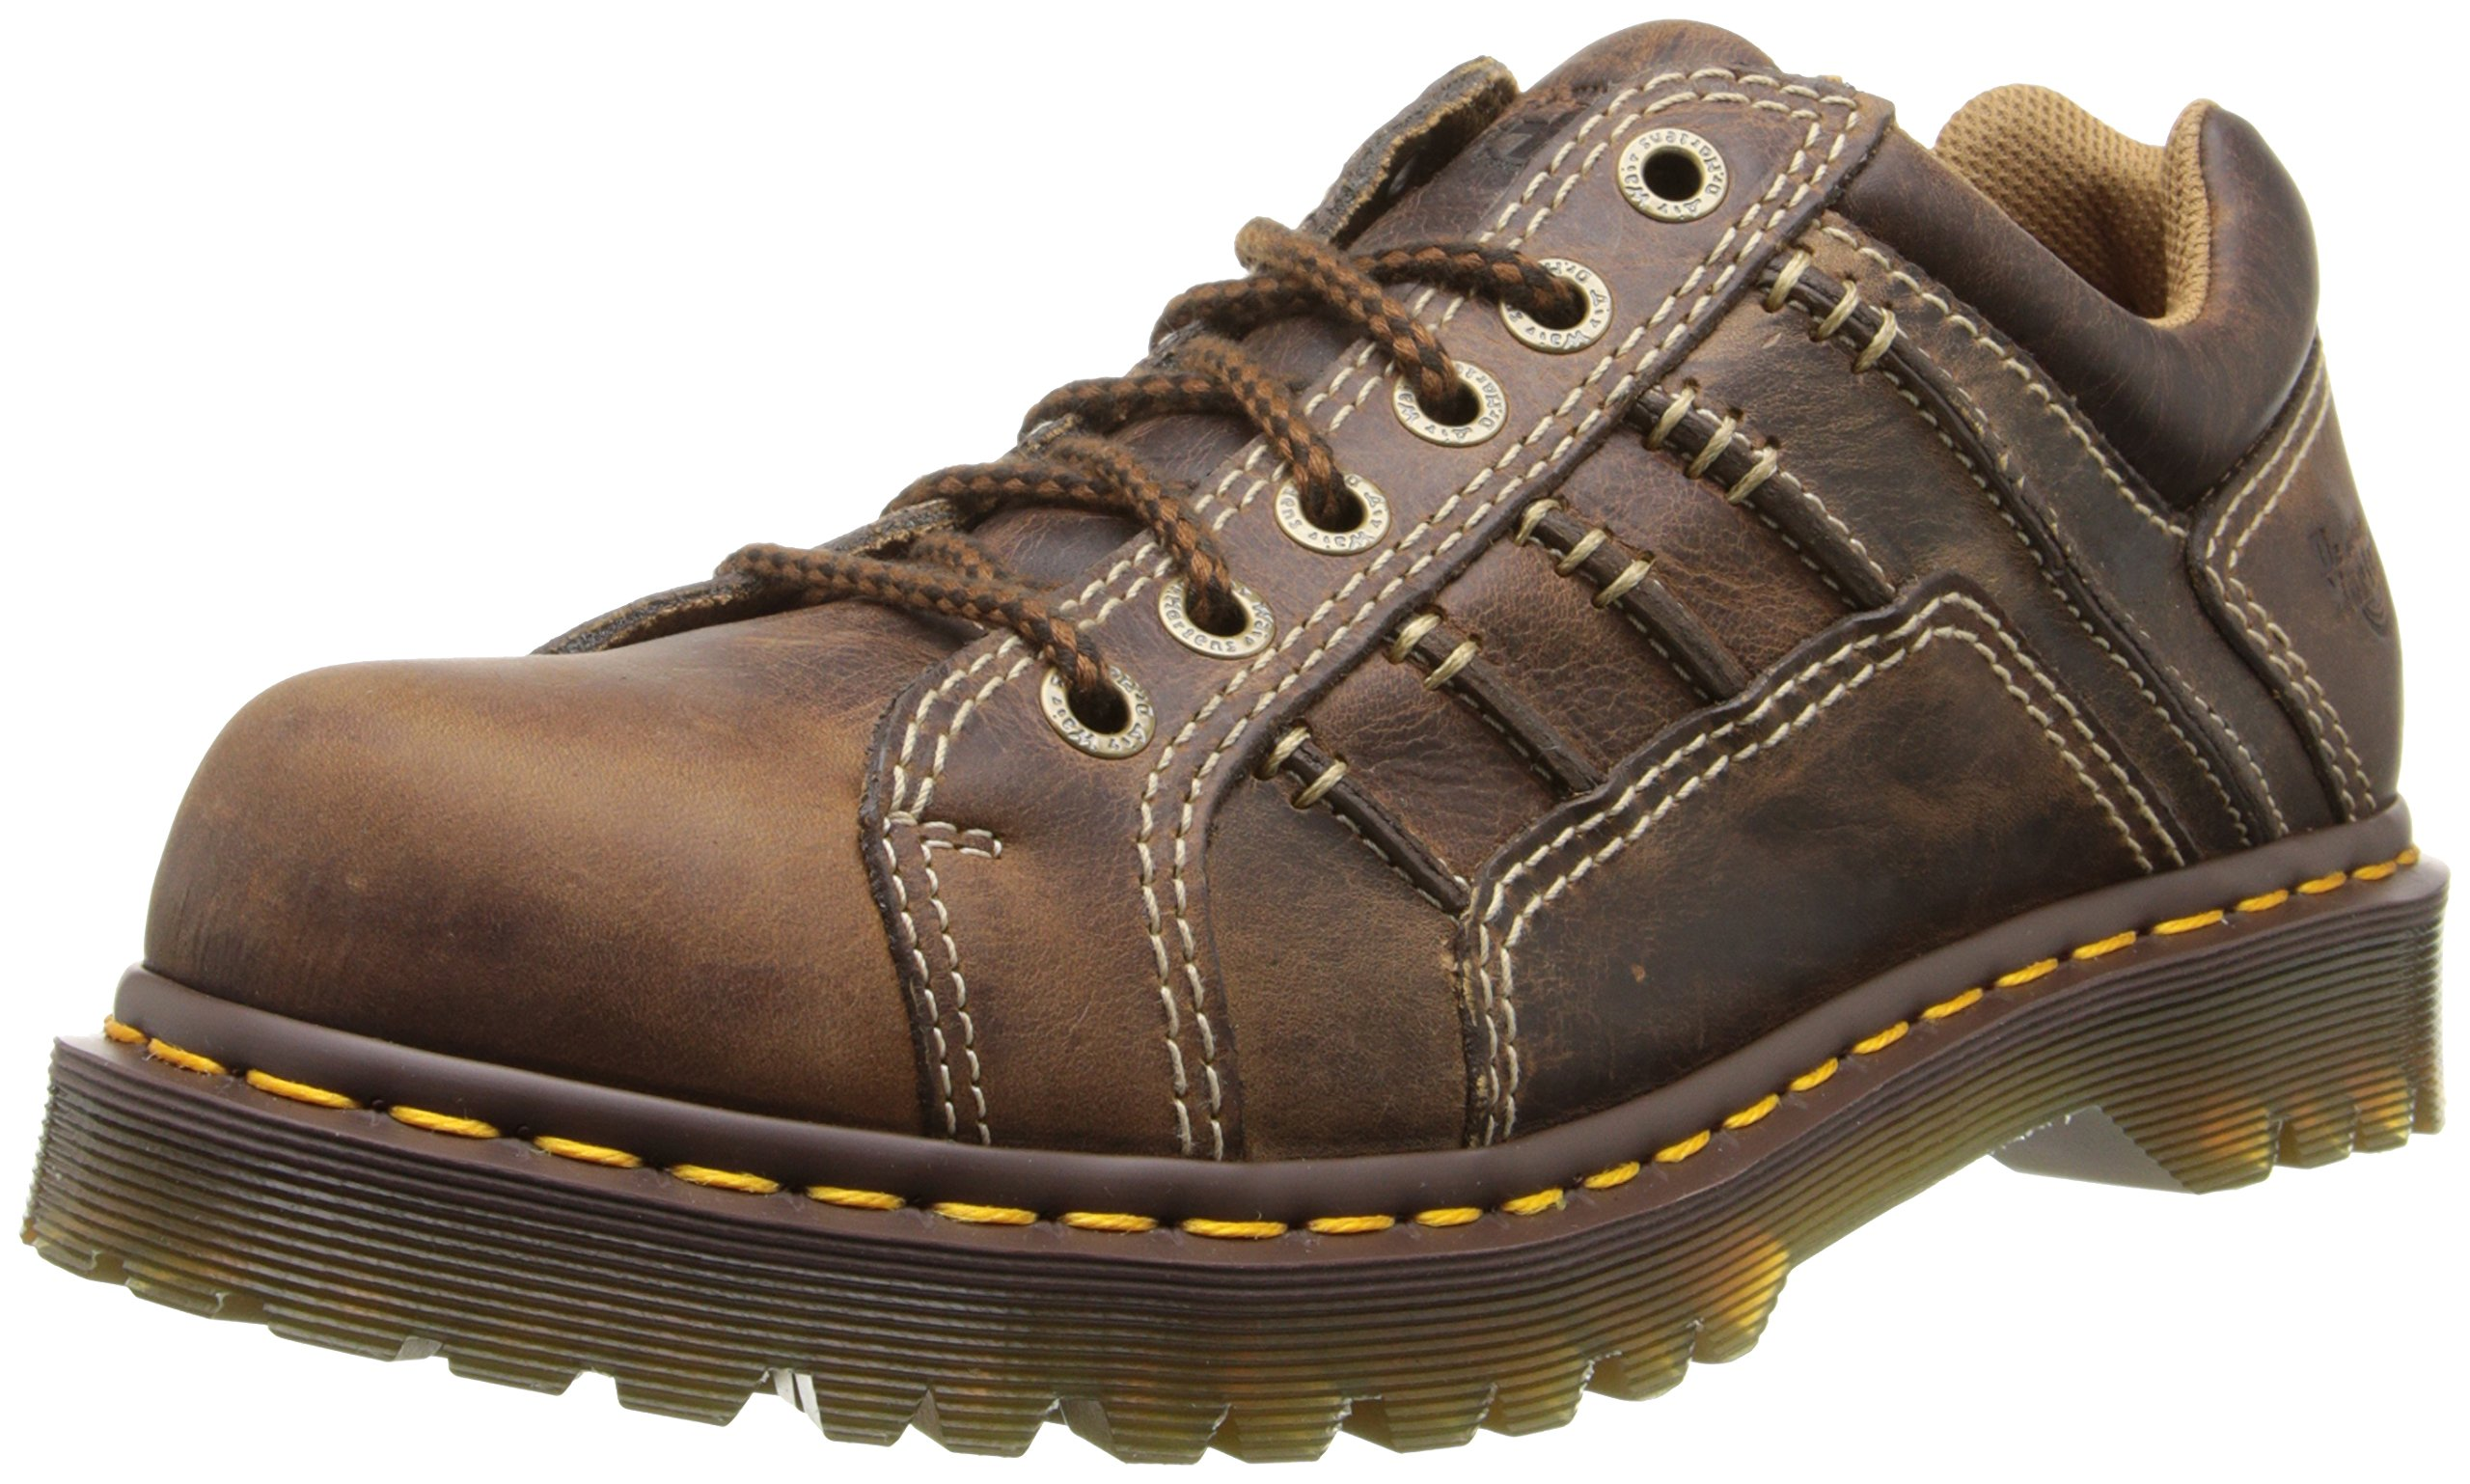 Dr. Martens Men's Keith Shoe,Tan Greenland,7 UK/8 M US by Dr. Martens